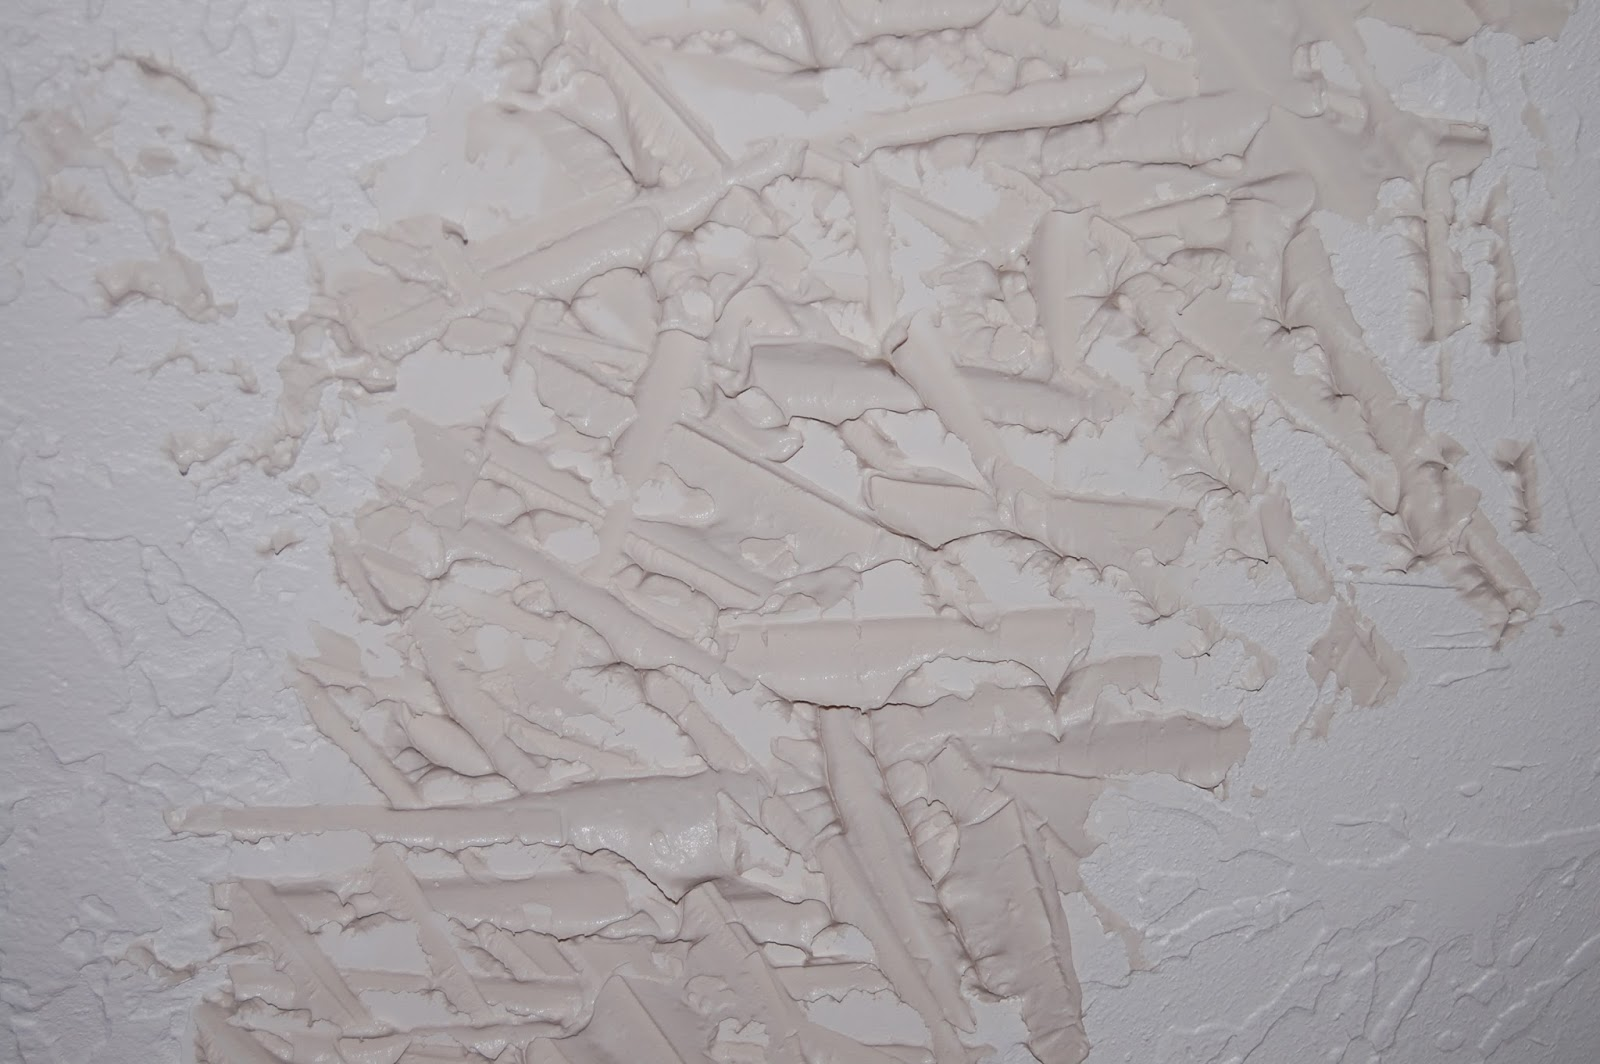 Diy Wall Texture With Roller : Number nineteen ninety two diy wall texturing